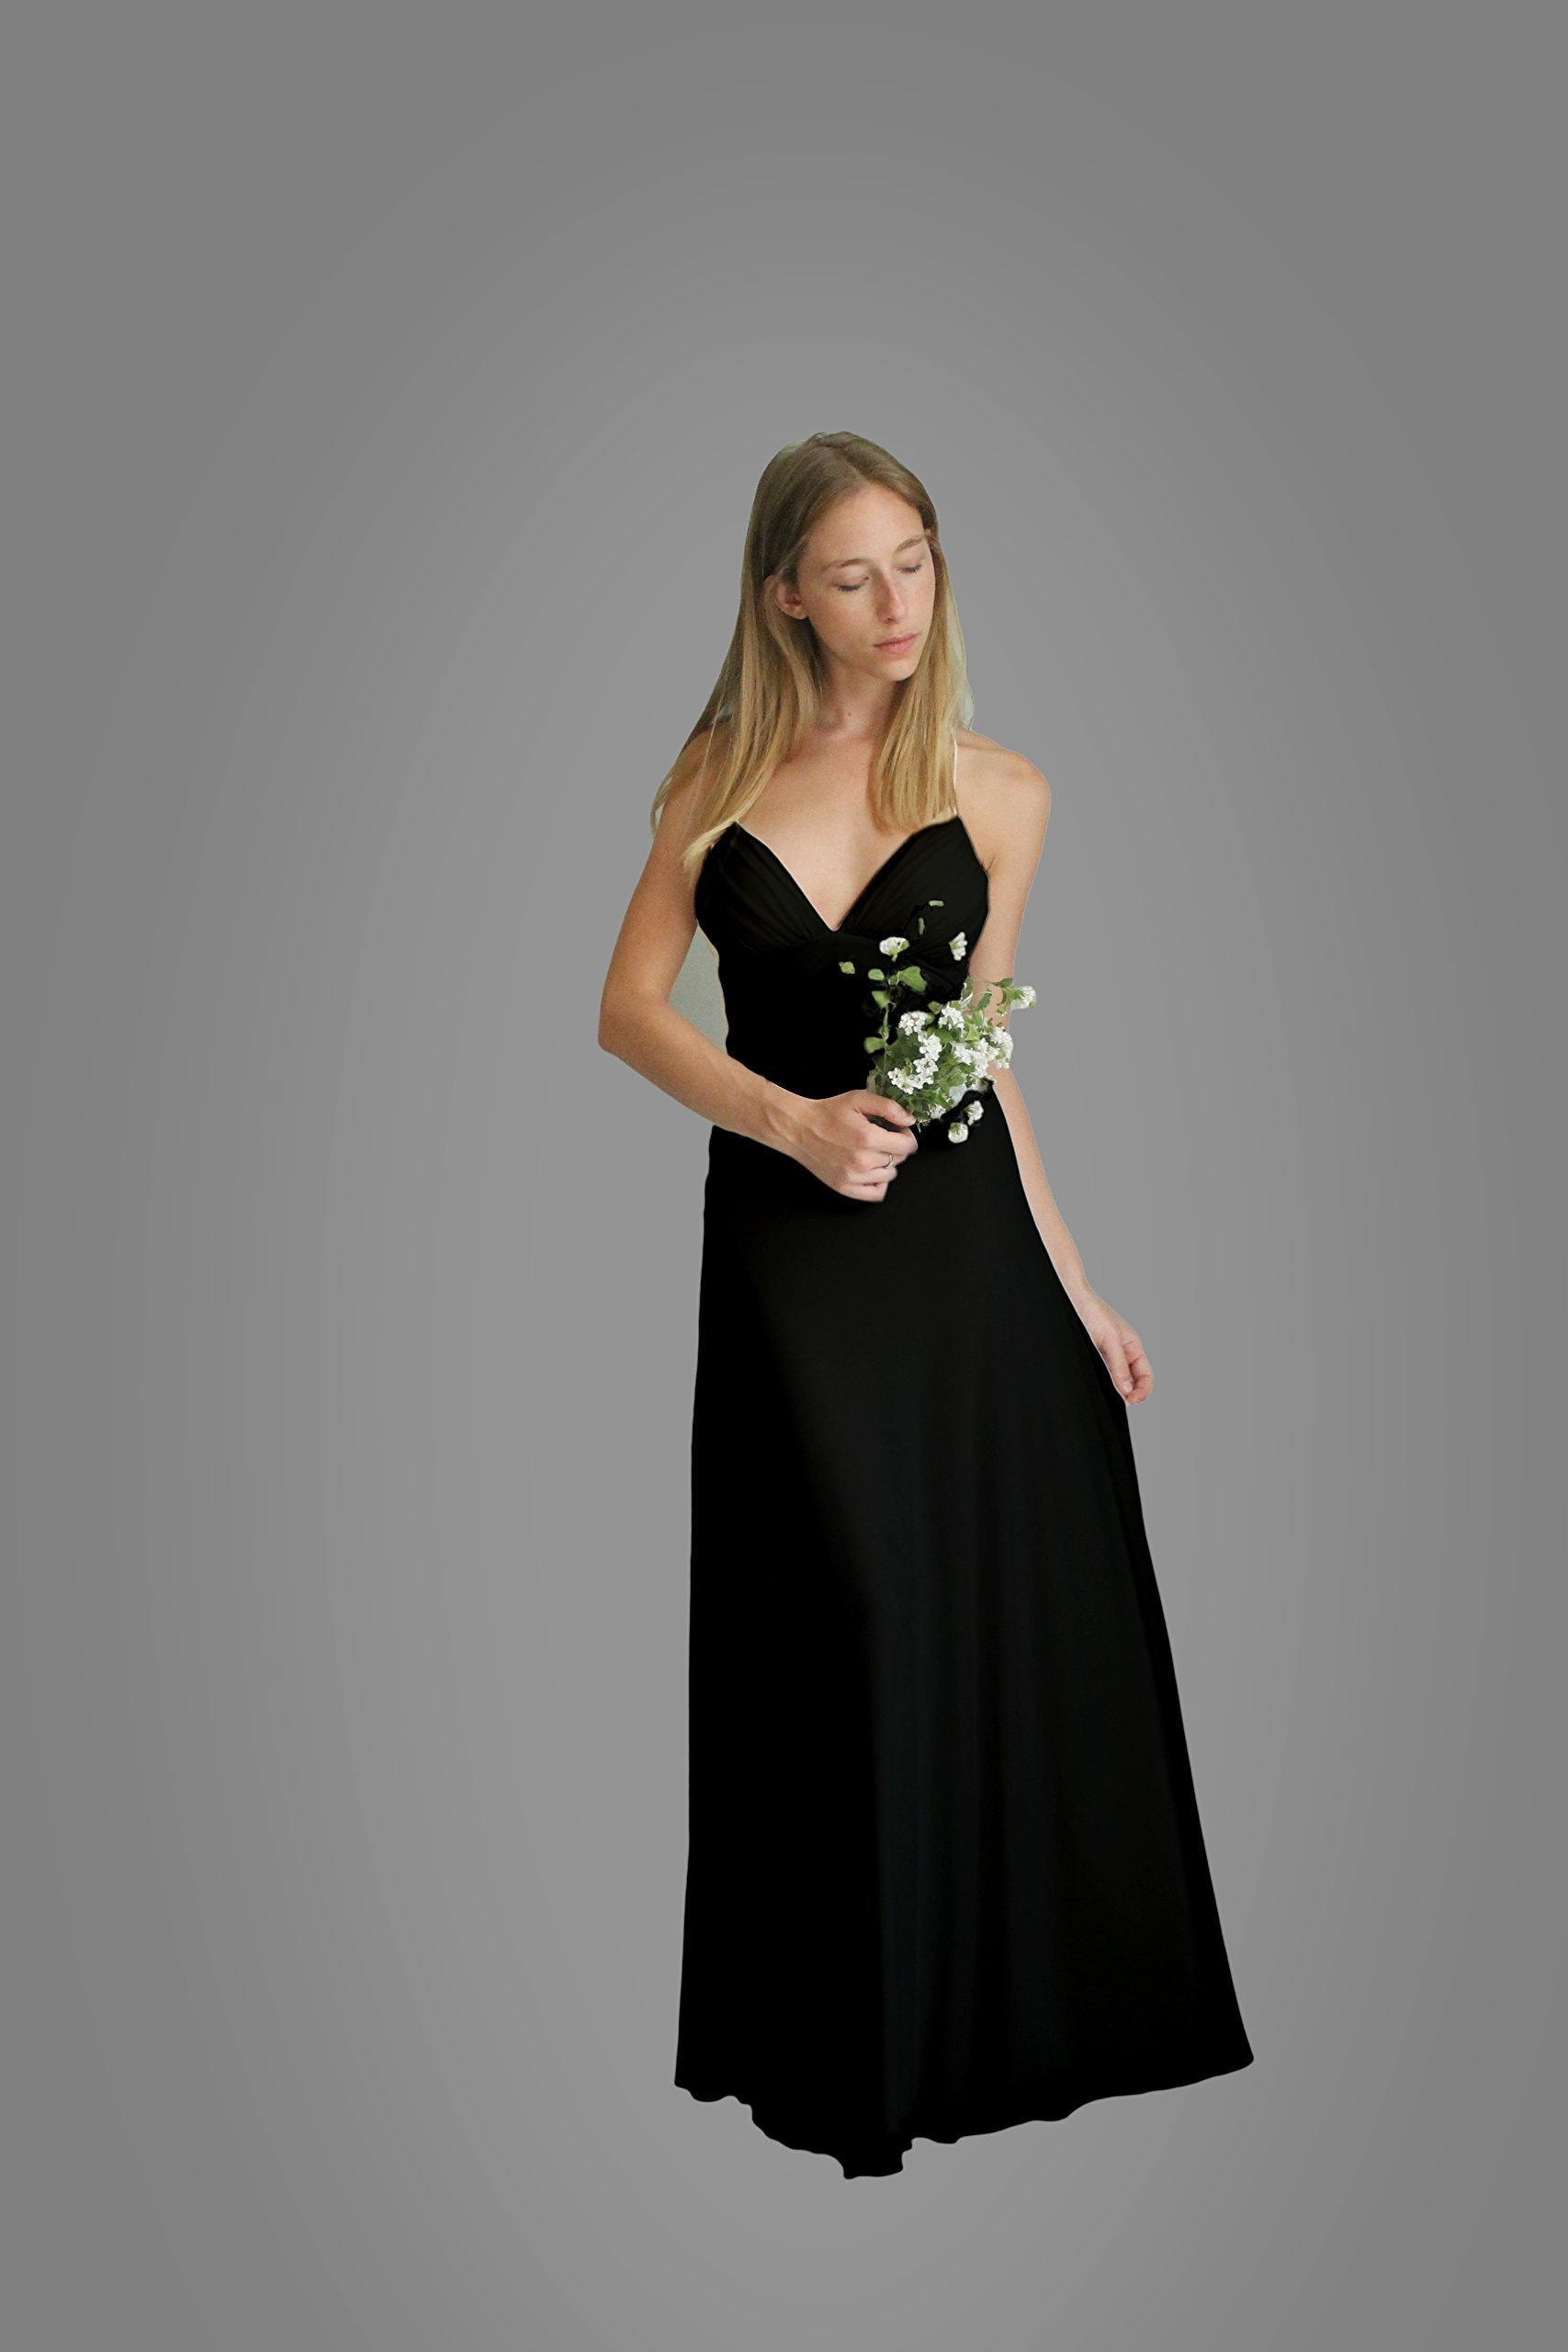 Women's Dress, Black Evening Dress, Size M, Maxi Long Dress for Wedding or Bridesmaid, Chiffon Lycra Classic Gown